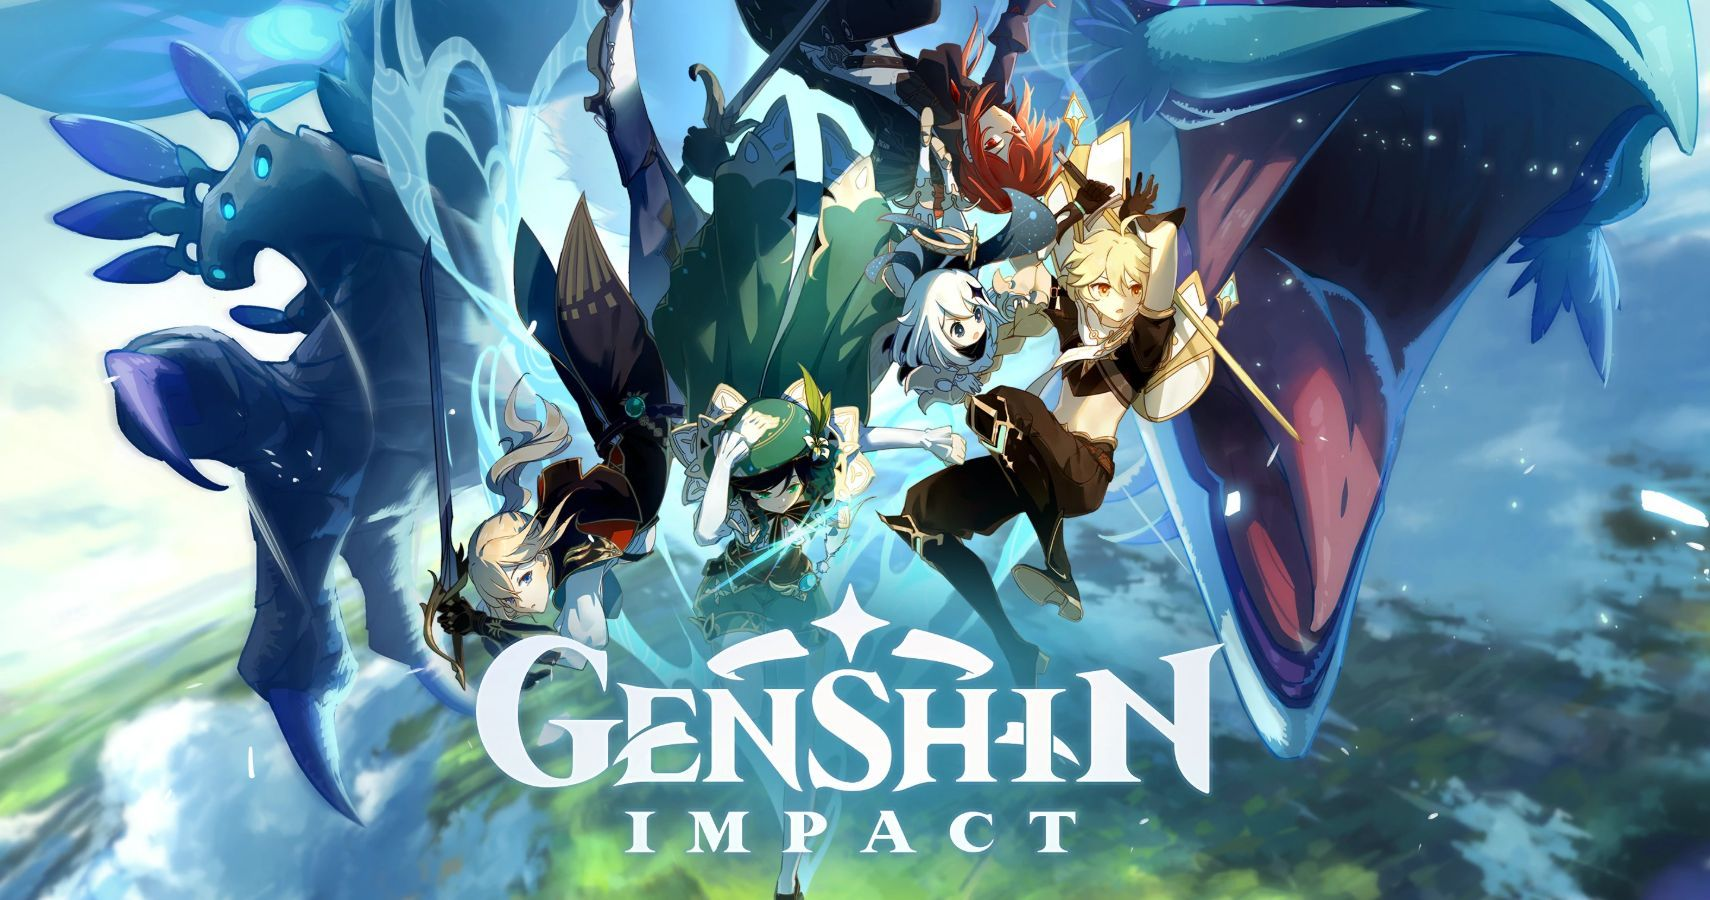 Genshin Impact Wins Several Mobile GameDev Awards, Including Best Newcomer And Best Event